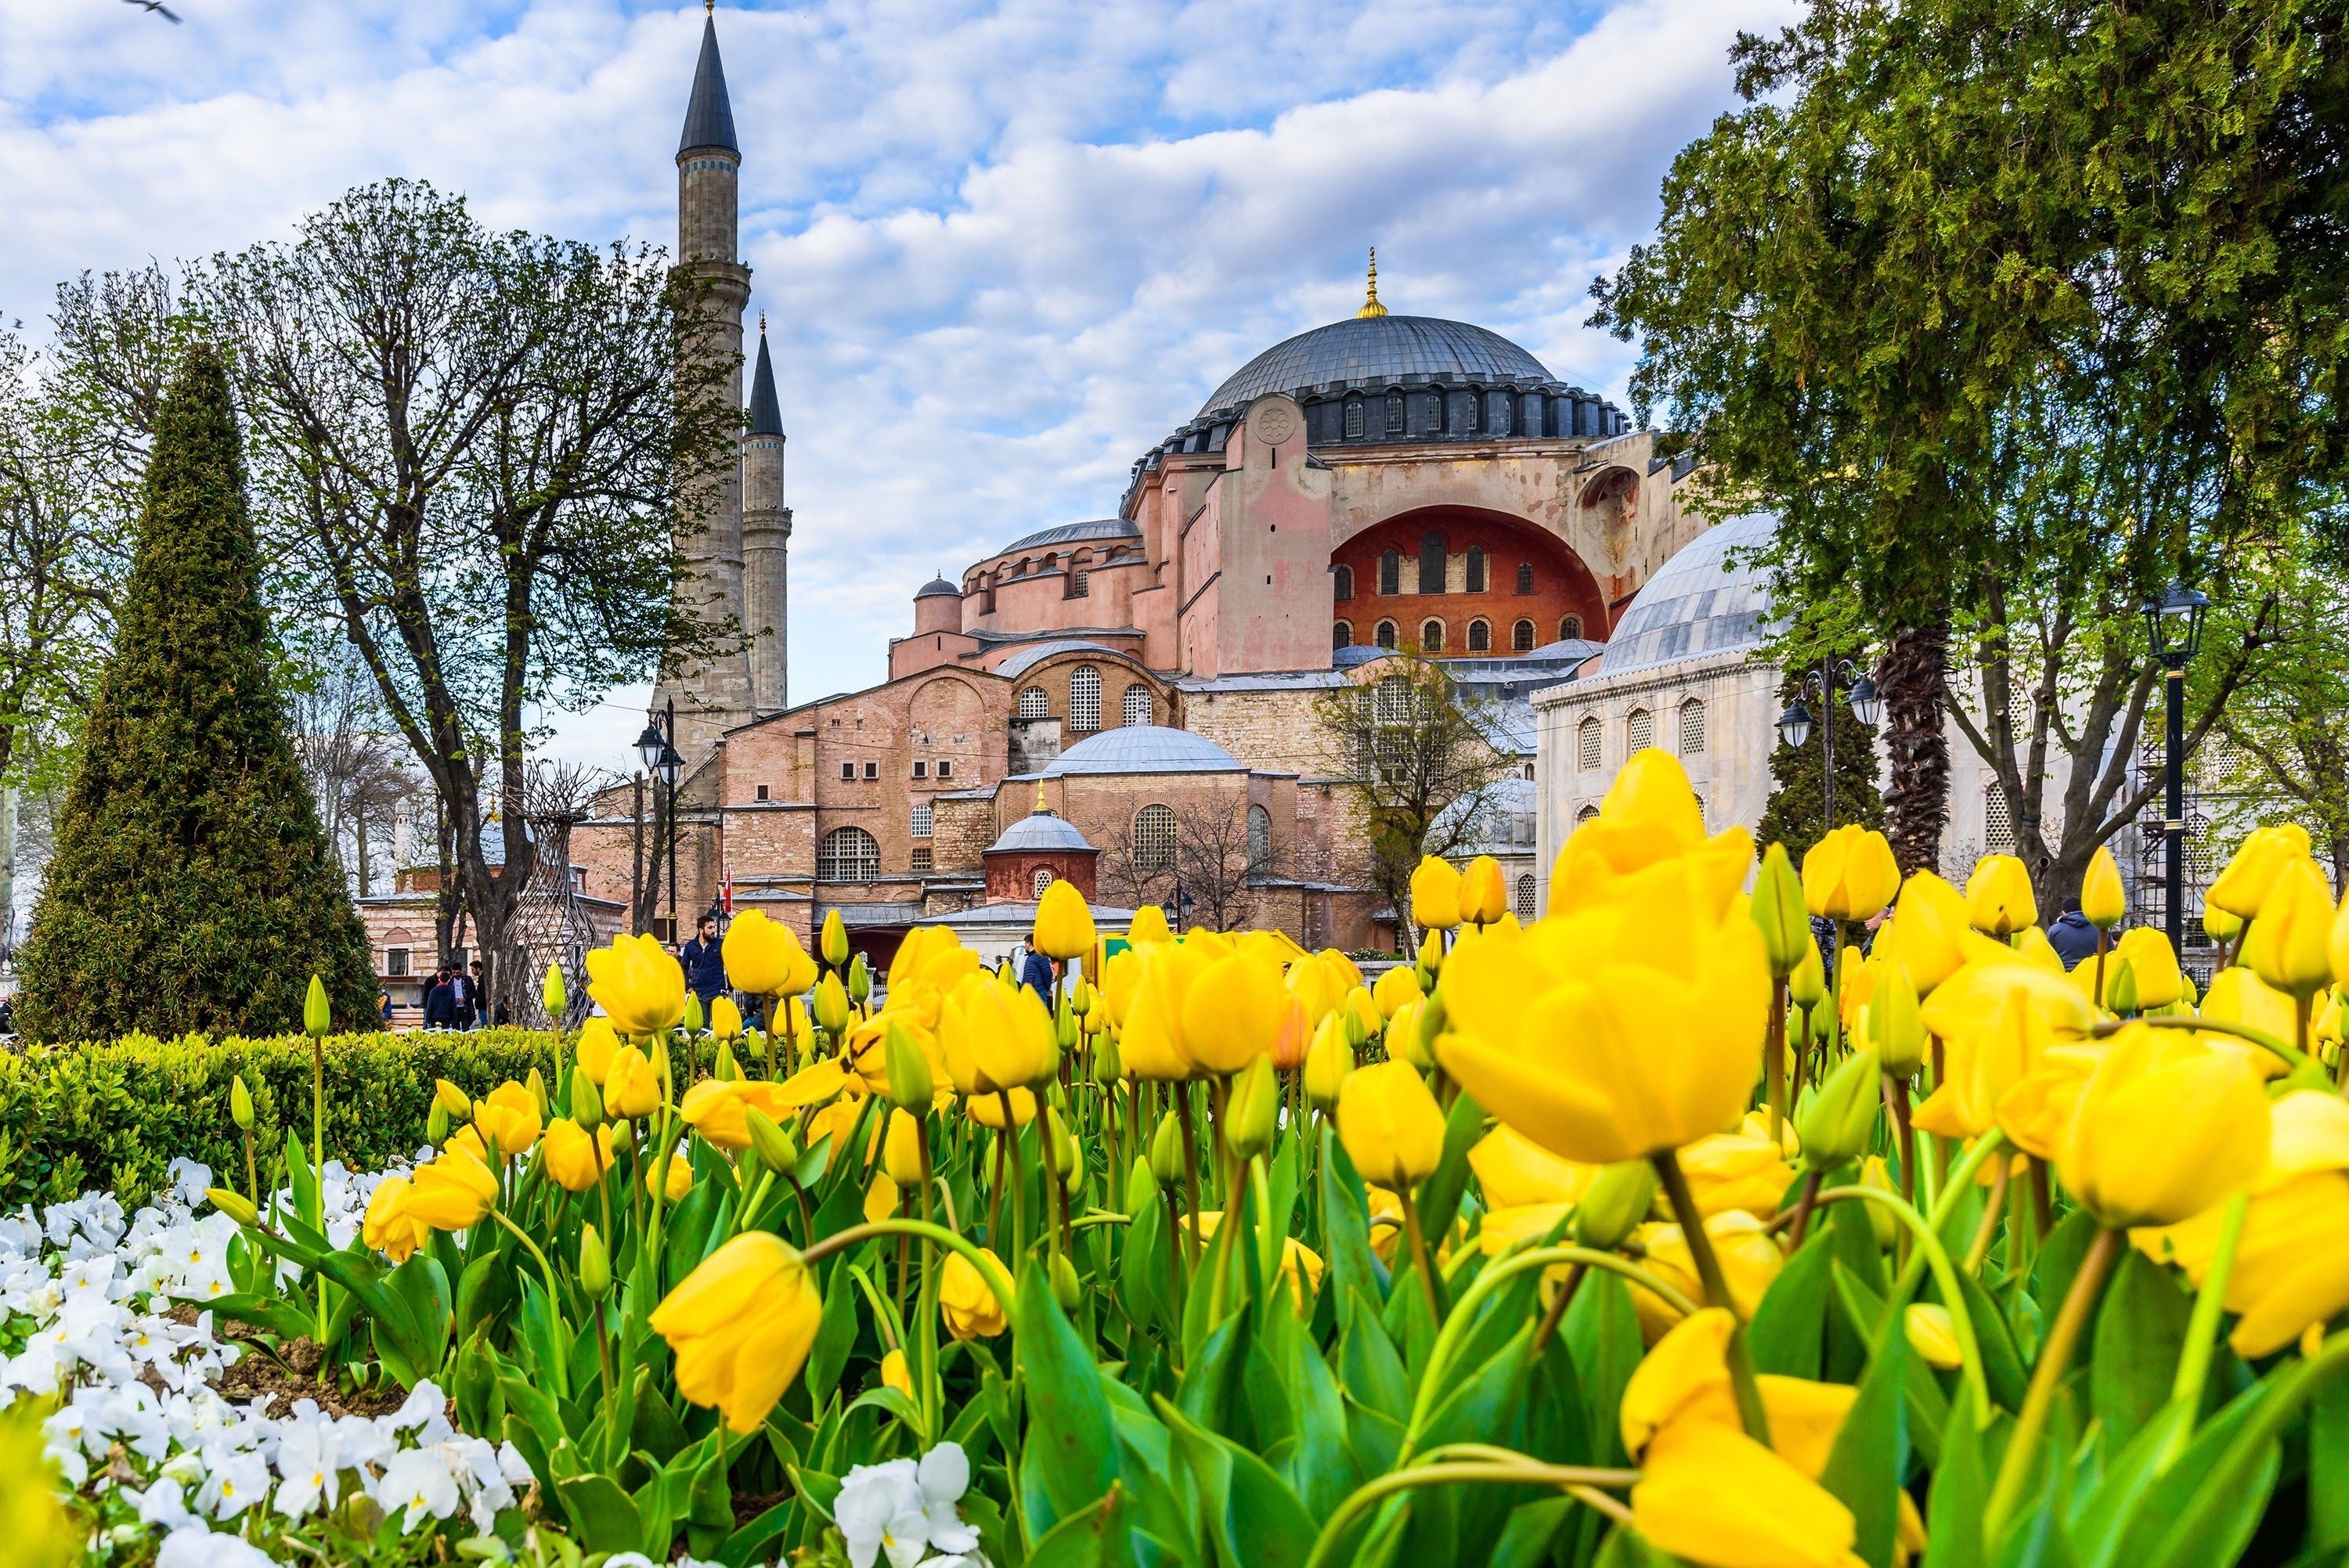 Tulips in Istanbul's Sultanahmet Square with a view of the Hagia Sophia Grand Mosque in the background. (Shutterstock Photo)